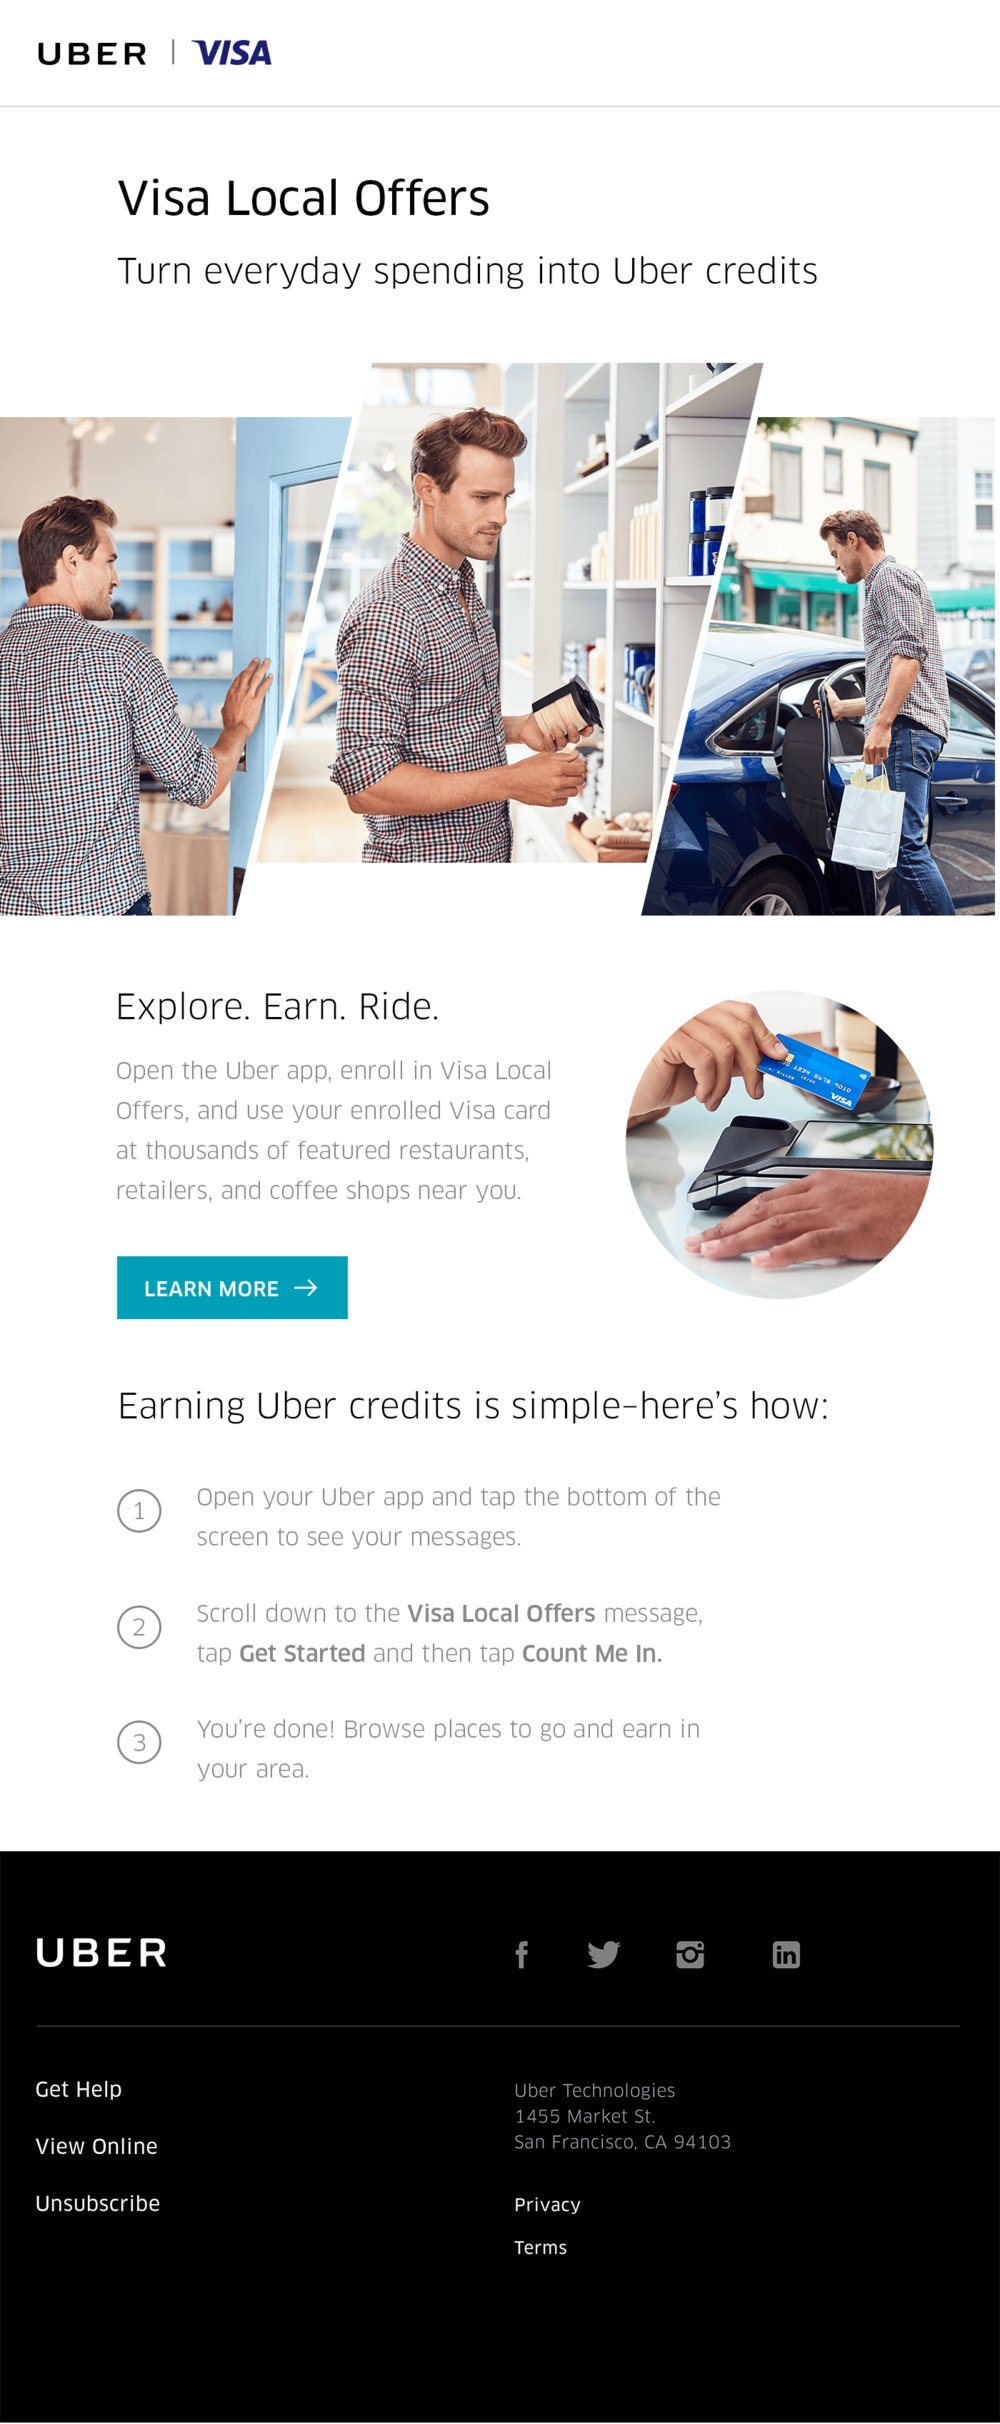 campaign launch email  - SUBJECT LINE: Ben, get Uber credits with Visa Local Offers. PREHEADER: Turn coffee, errands, drinks, and more into Uber credits with your Visa card.